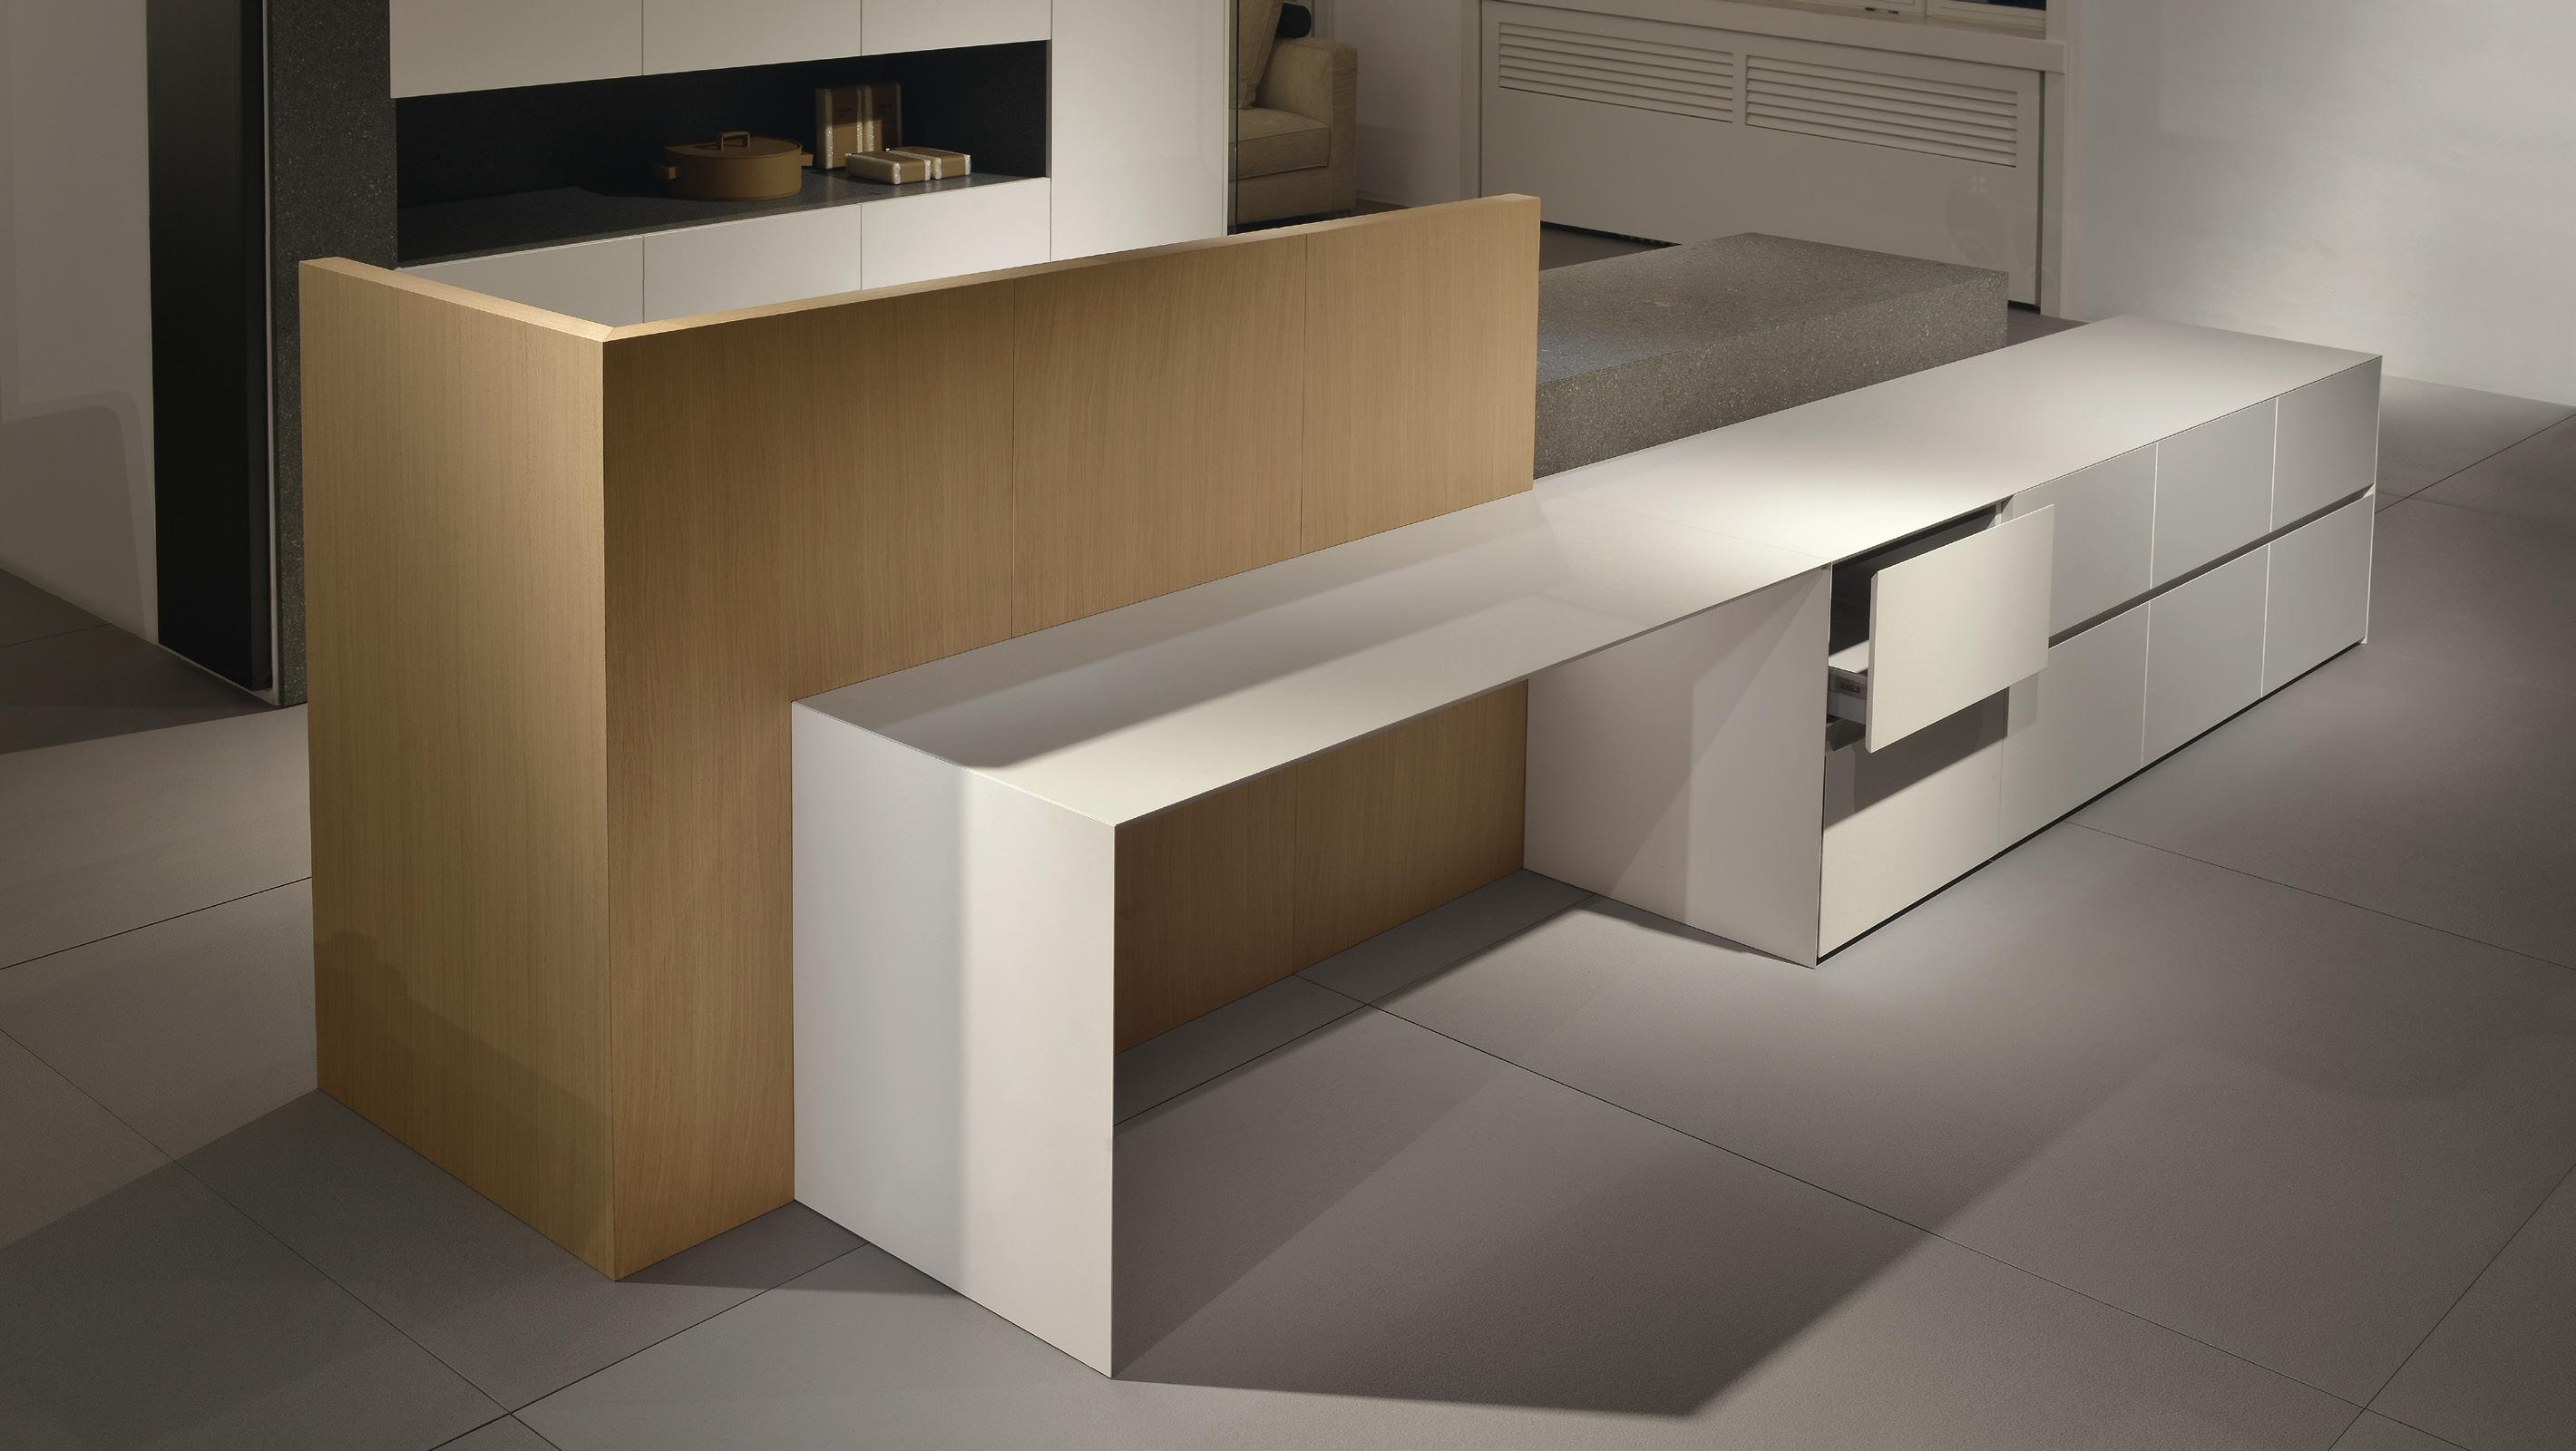 da kuchen design la cucina arte kuchendesign le cucine di qualit a roma. Black Bedroom Furniture Sets. Home Design Ideas